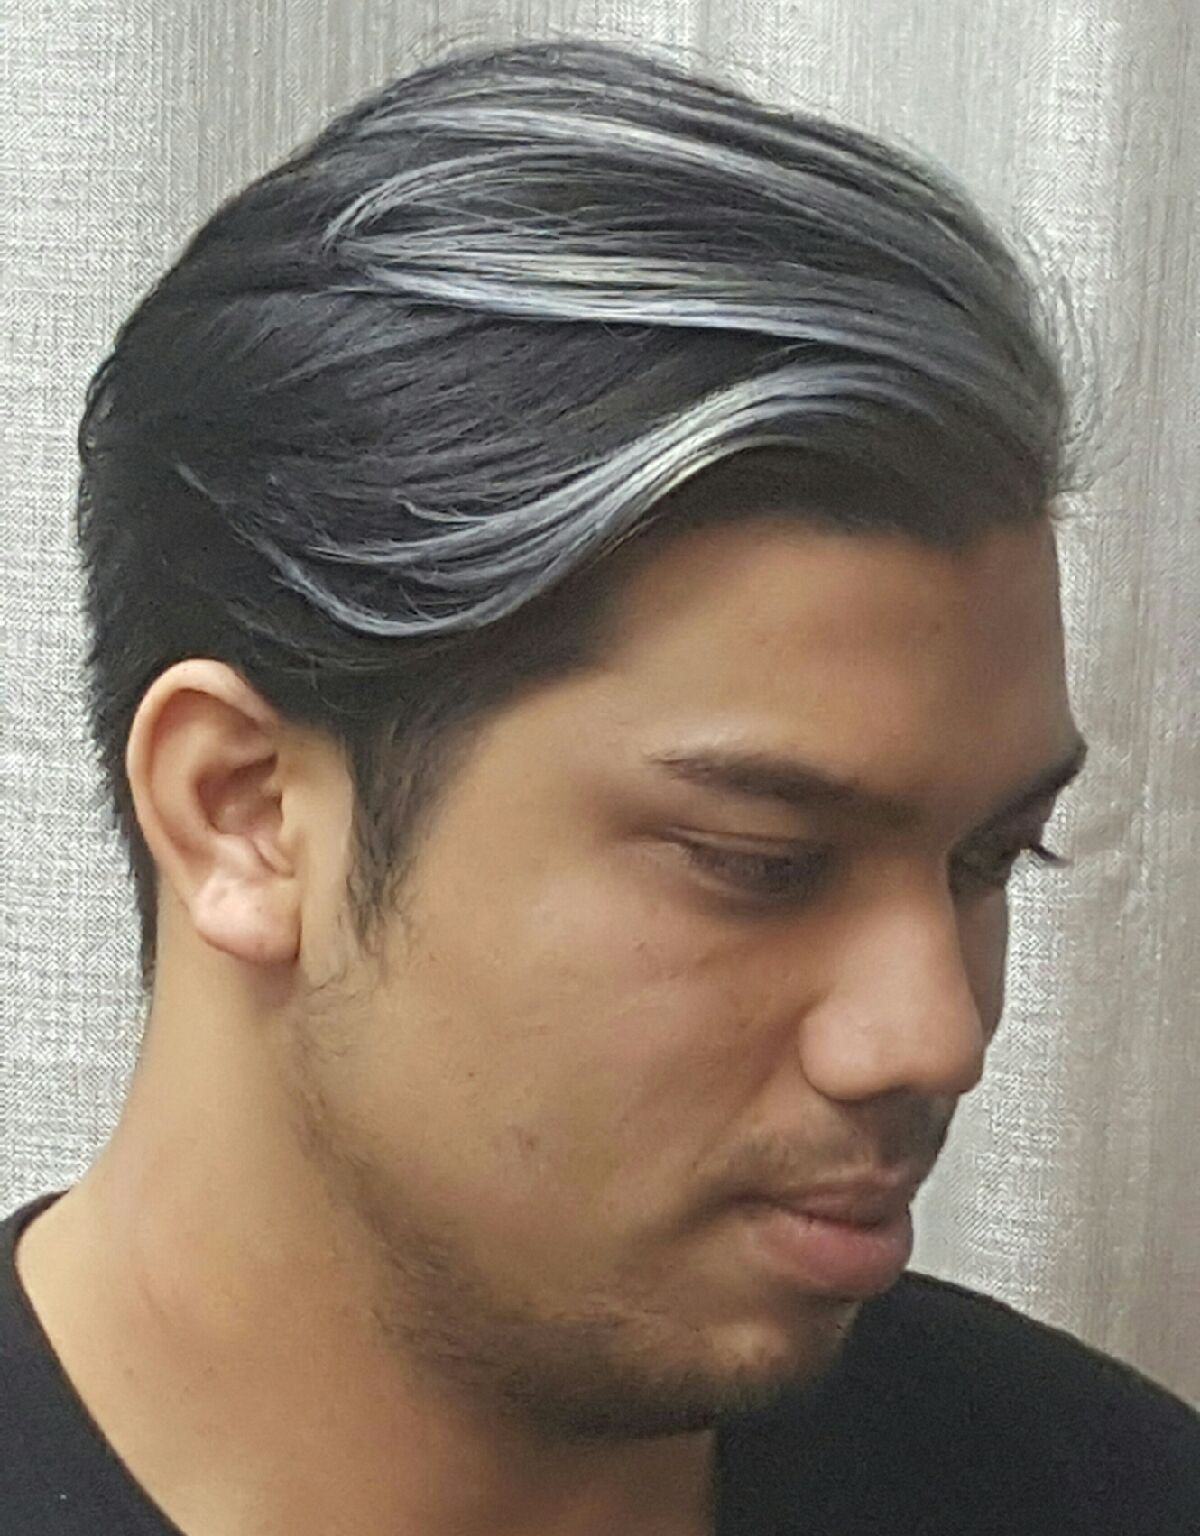 Asian Silver Ombre Mens Haircut Hair Styles Latest Trends Black Hair Silver Silver Hair Silver Hair Highlights Blonde Hair With Highlights